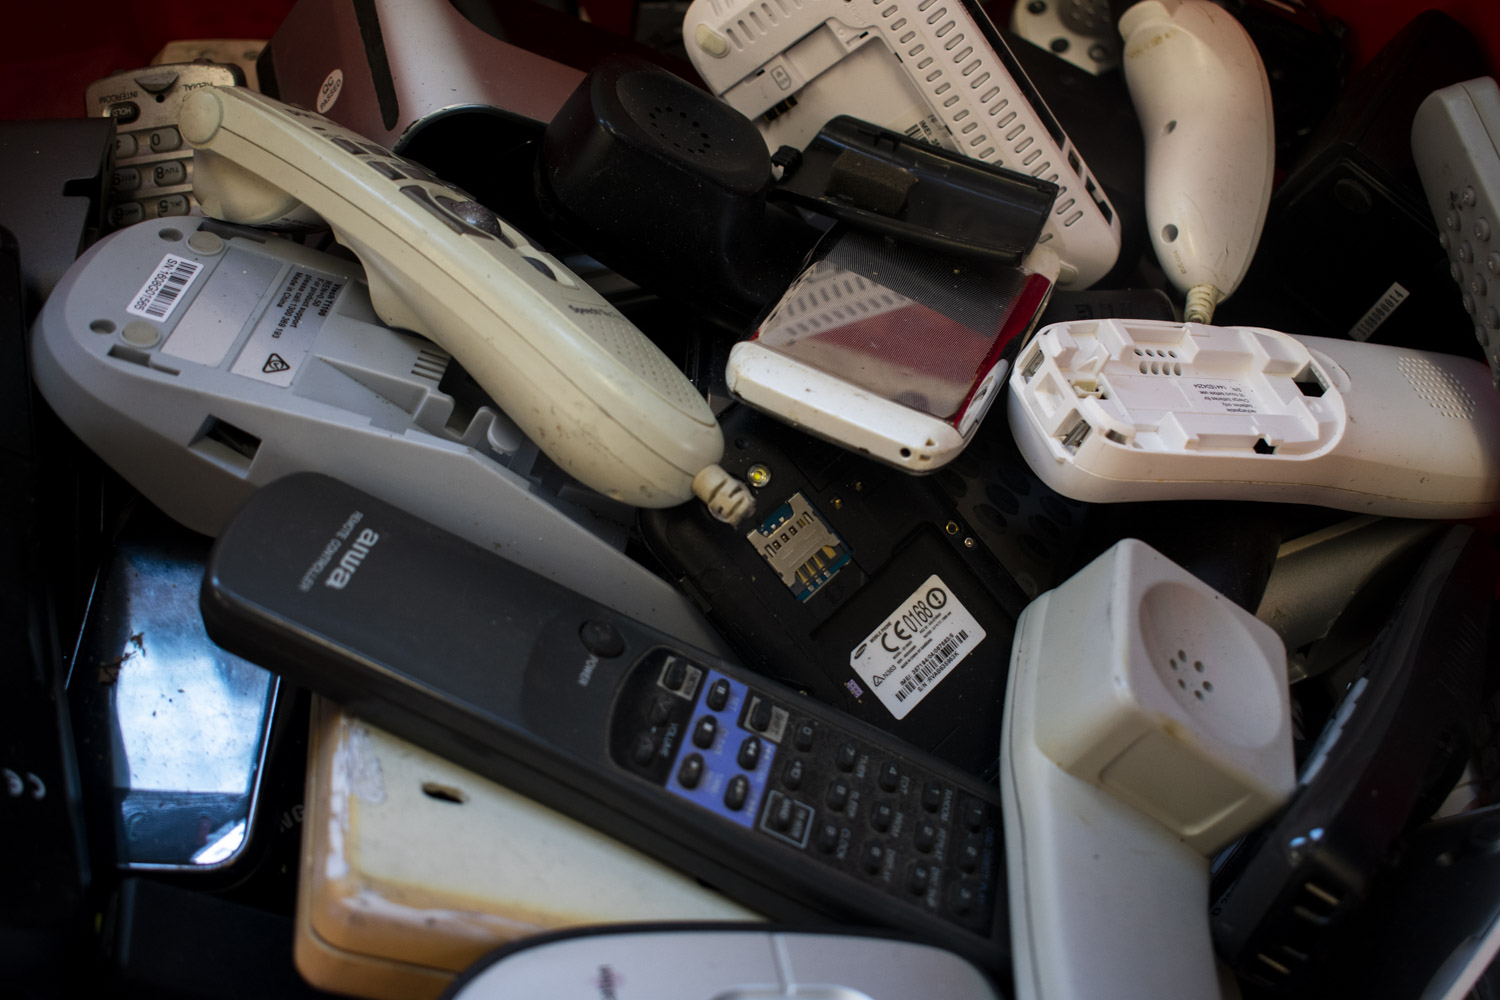 Word spread quickly that eWaste Connection was taking old, broken and unwanted electronic items, including used mobile and landline phones.